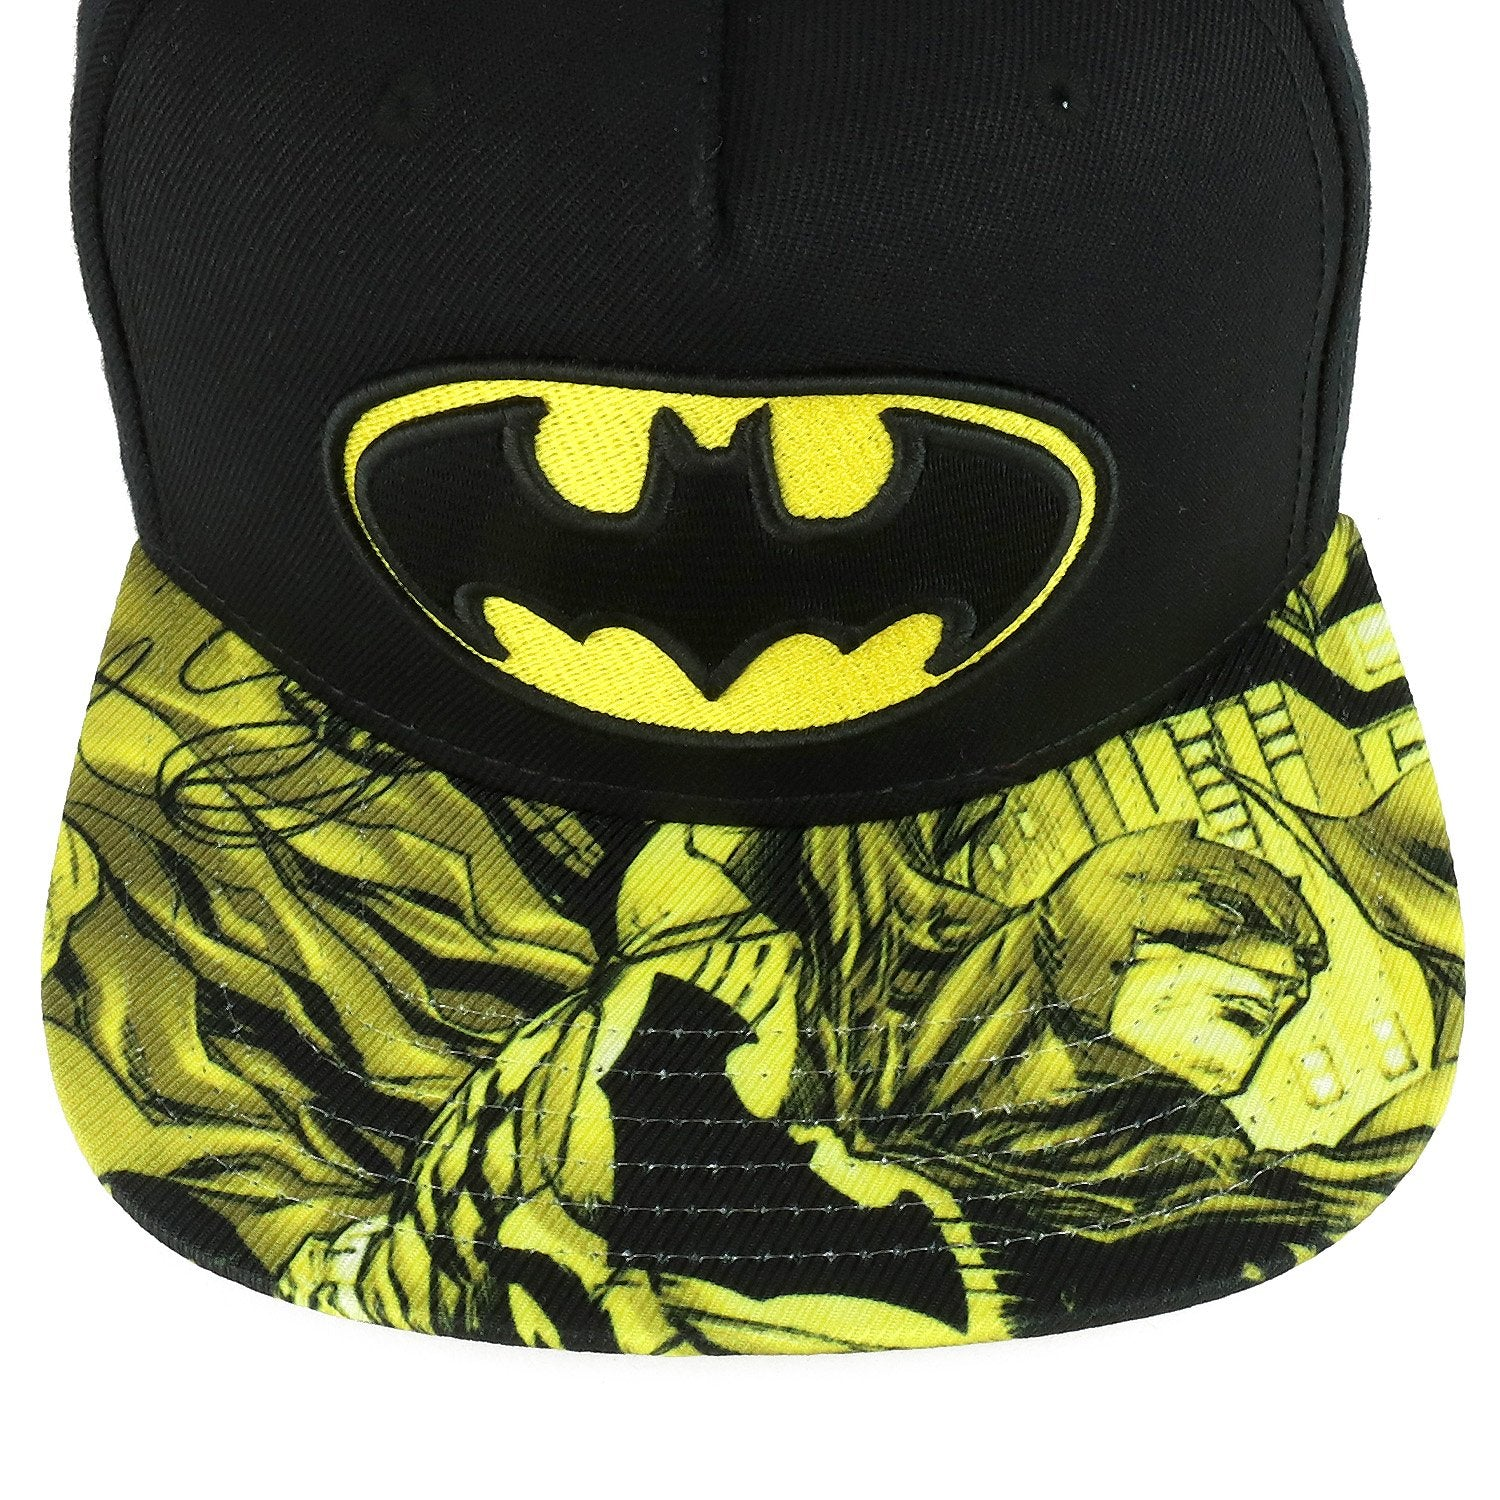 26203f5e7 Armycrew Youth Size Kid's Batman Logo Design Embroidered Flatbill Snapback  Cap